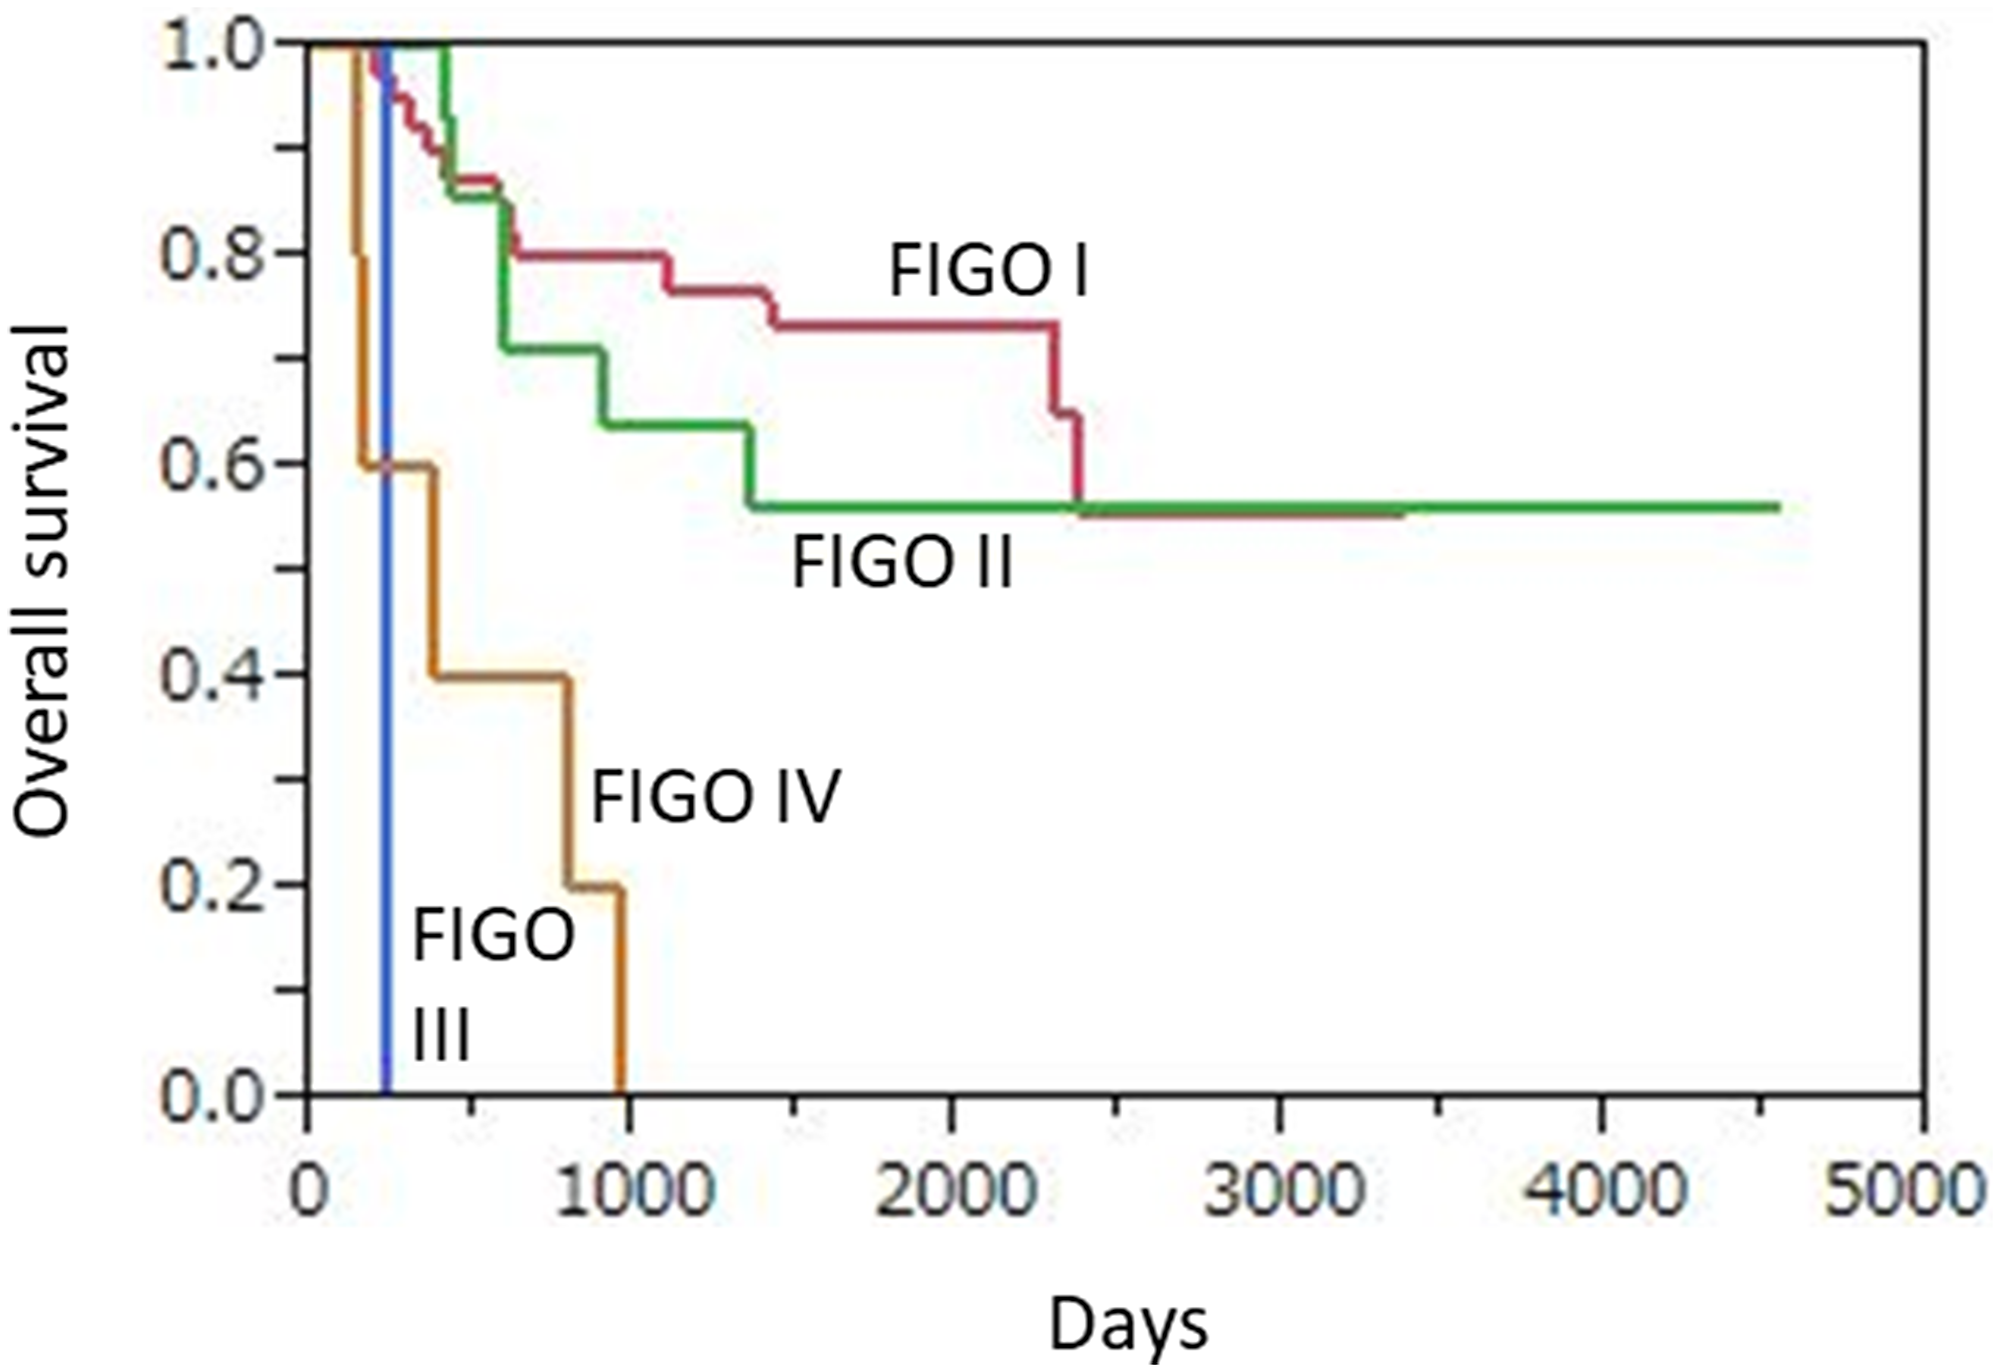 Kaplan-Meier overall survival curves for 62 uterine cervical neuroendocrine carcinoma patients according to FIGO stage.